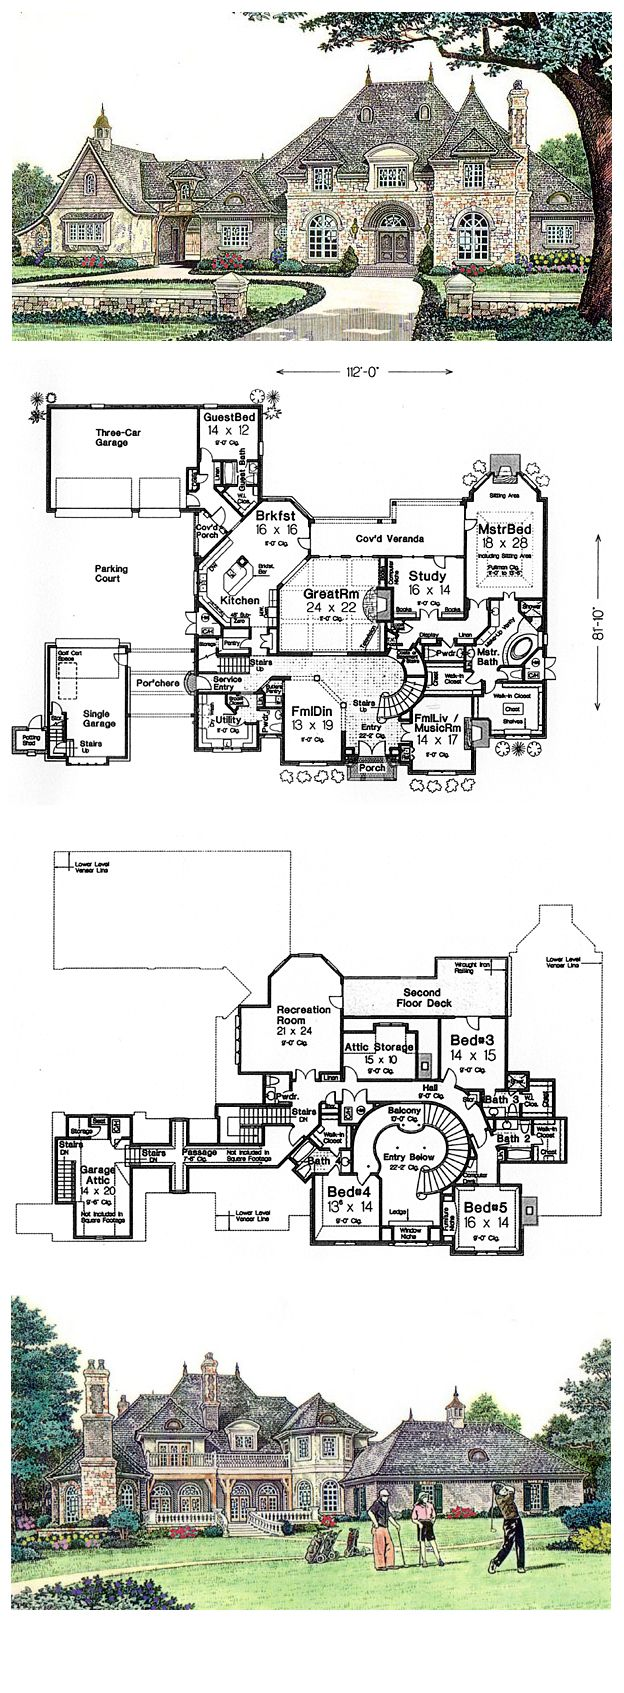 211 best floor plans images on pinterest house floor plans cool house plan